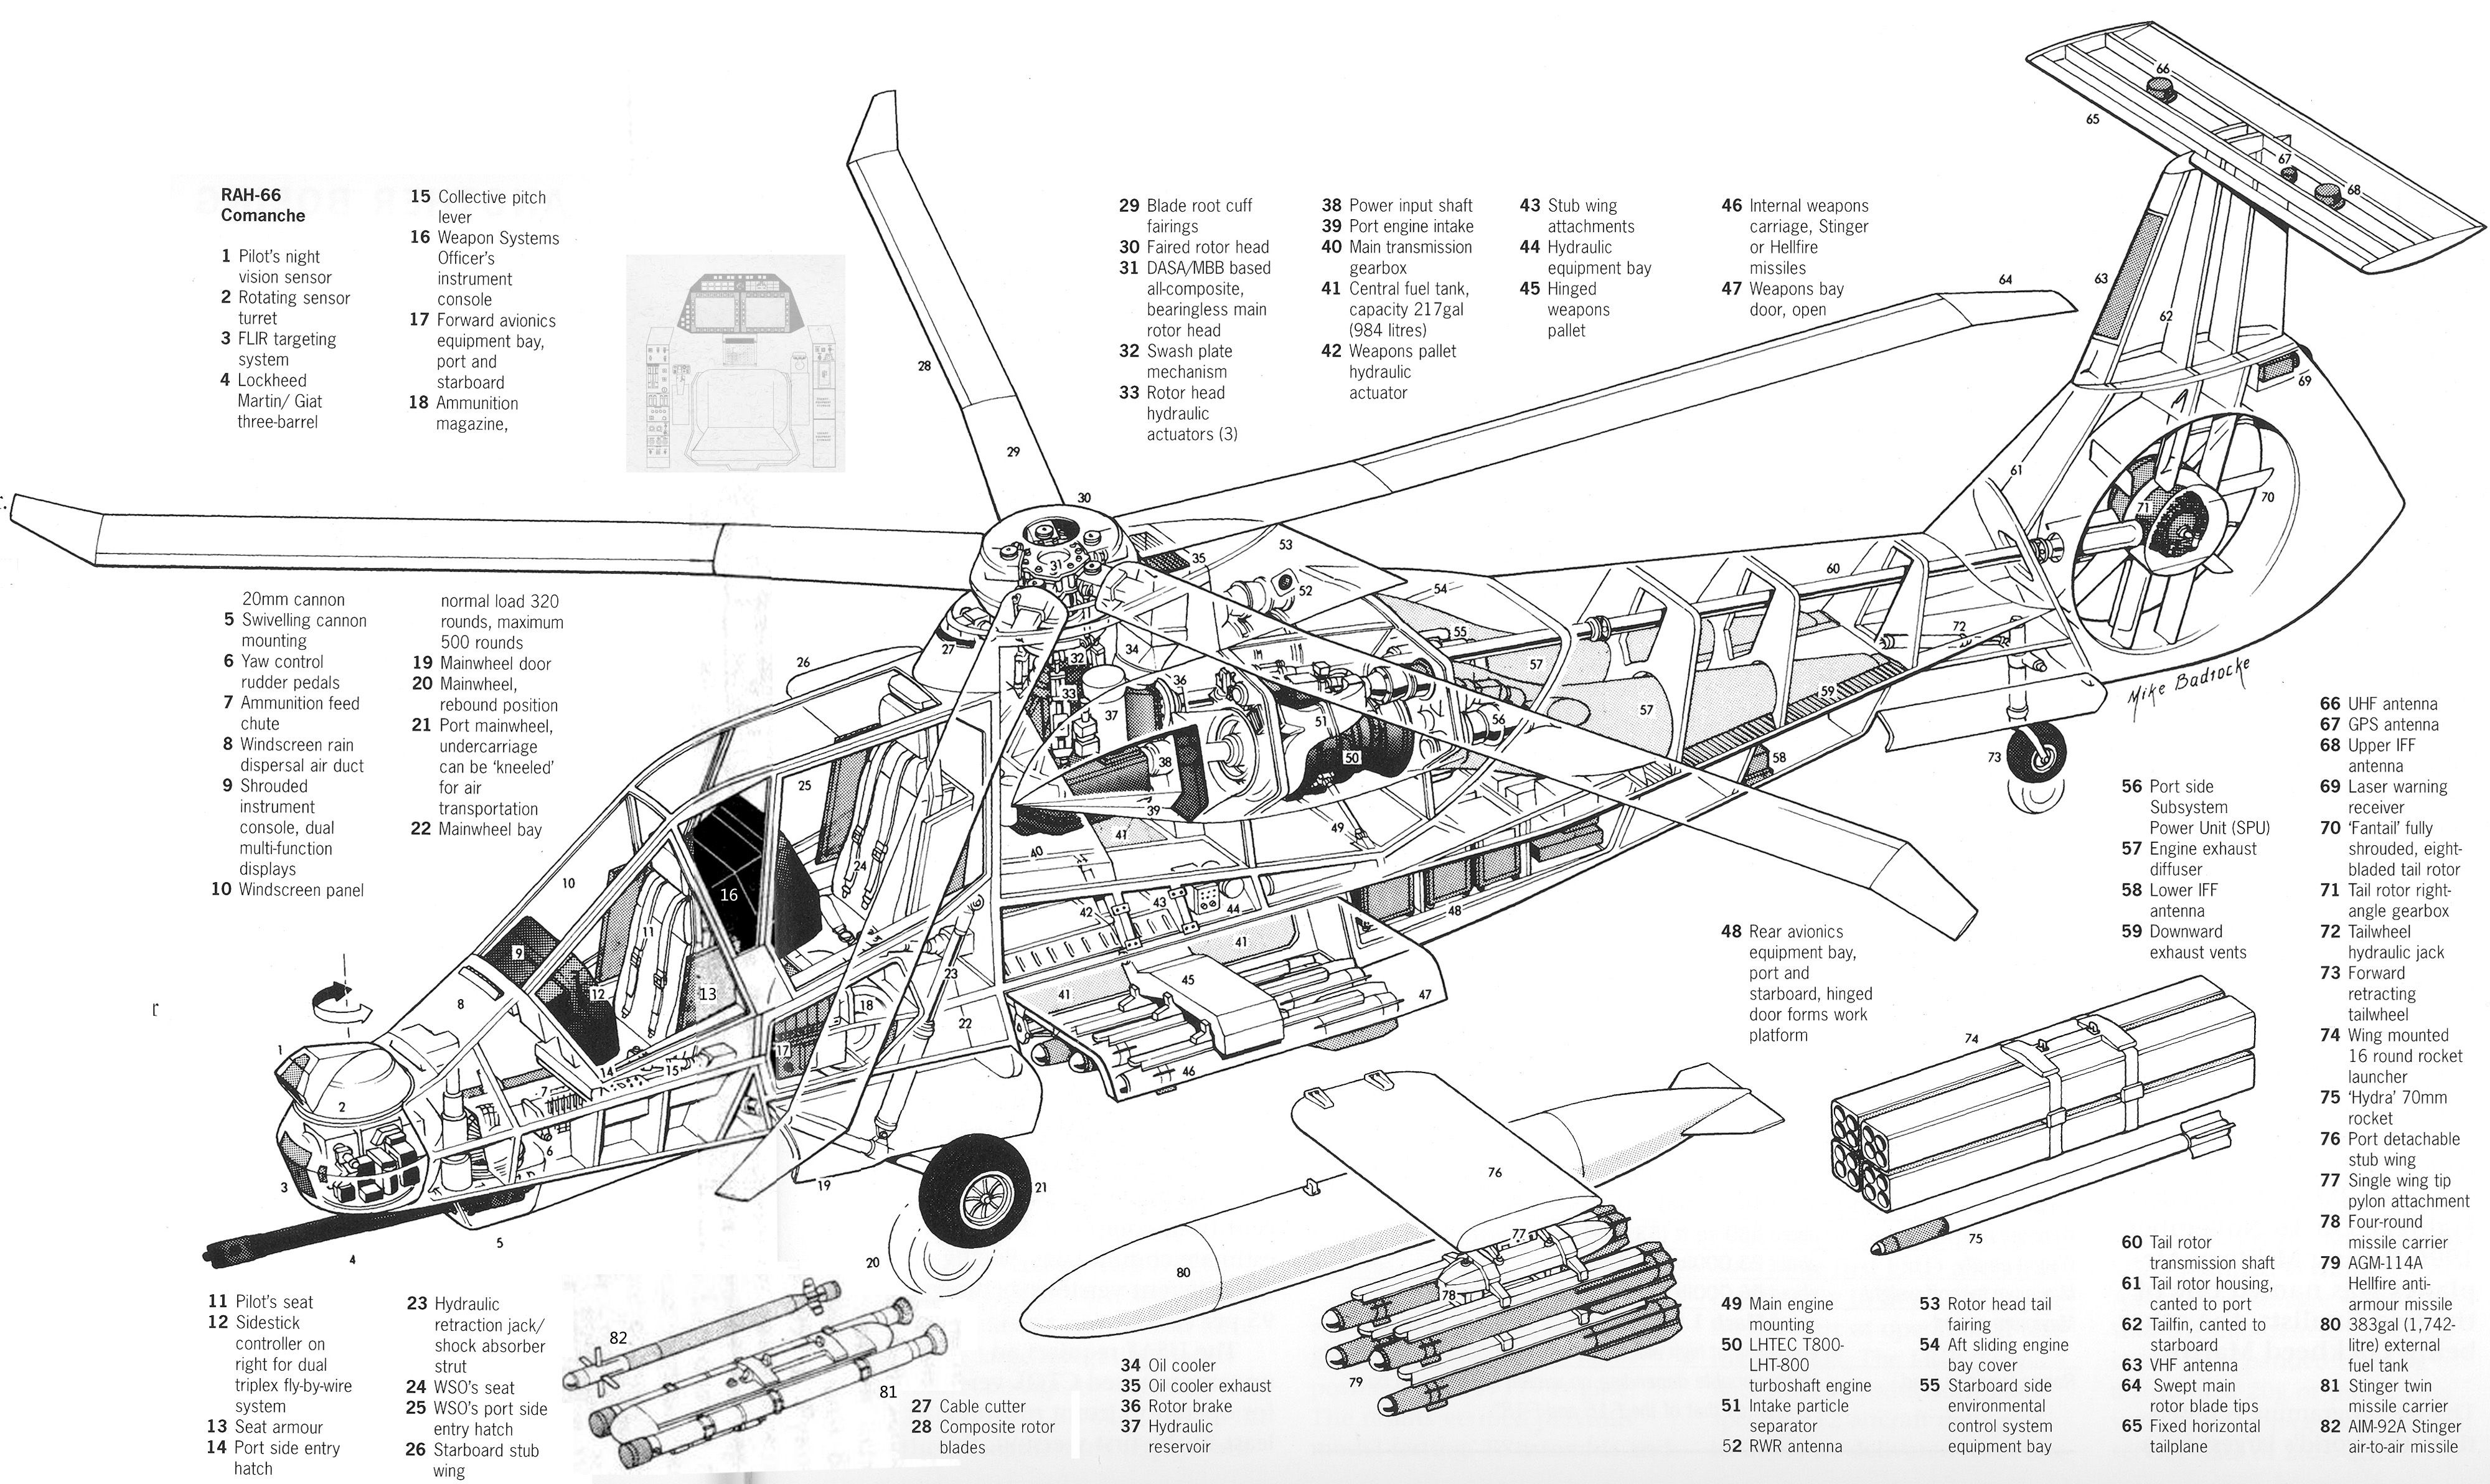 Pin by Gerrie on cutaway | Pinterest | Cutaway, Aircraft and Airplanes